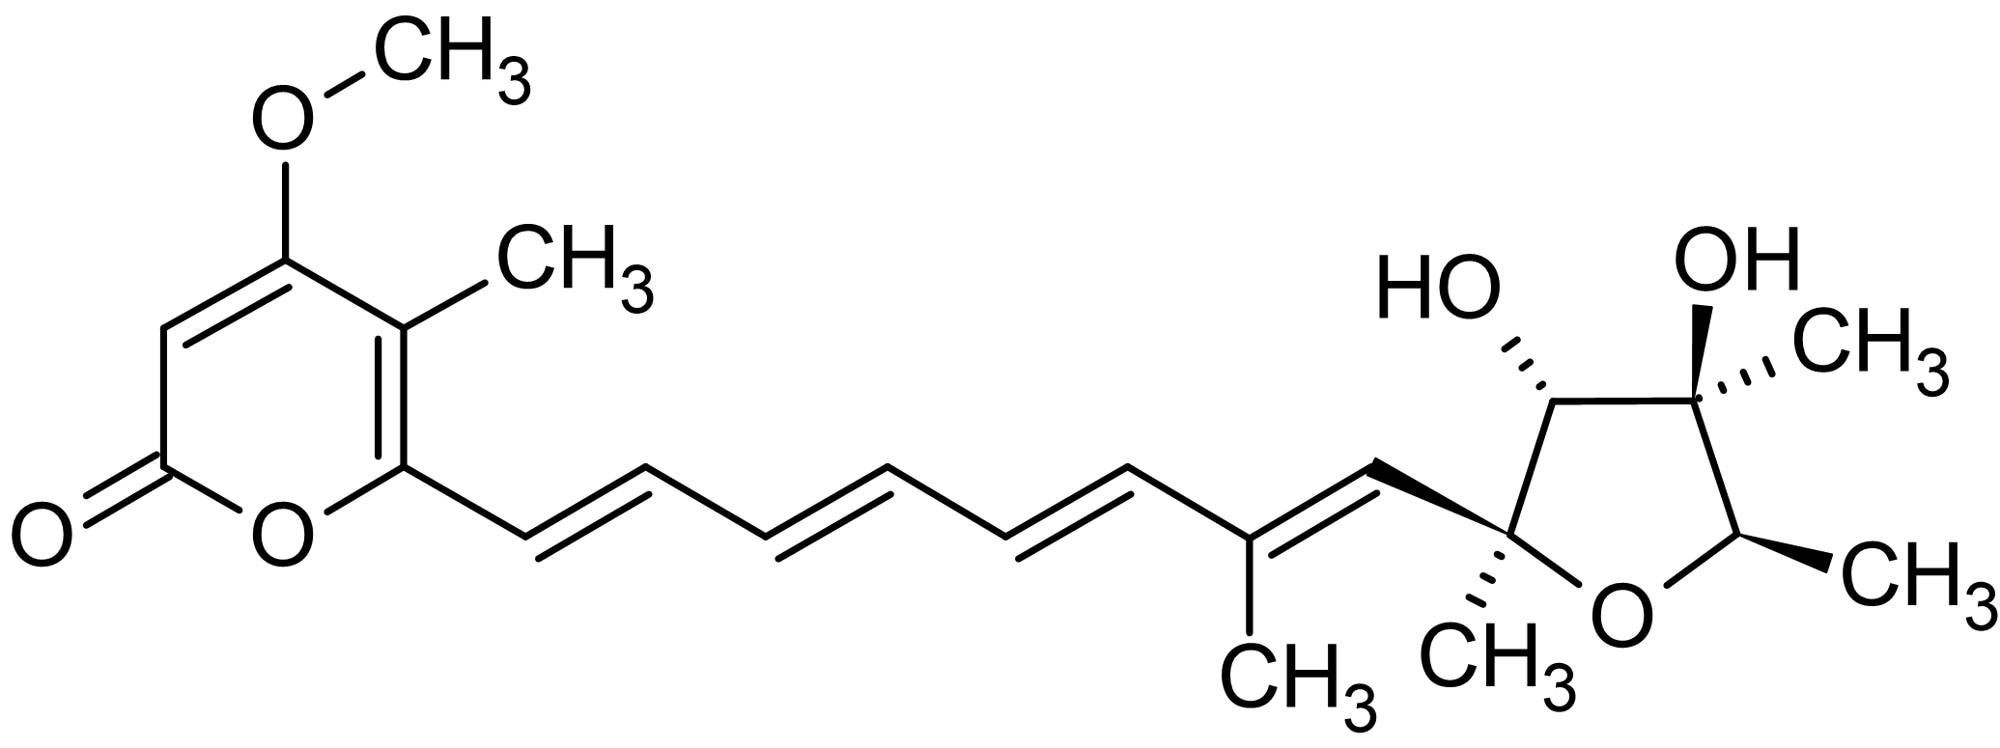 Chemical Structure - Citreoviridin A, mitochondrial ATPase inhibitor (ab142503)